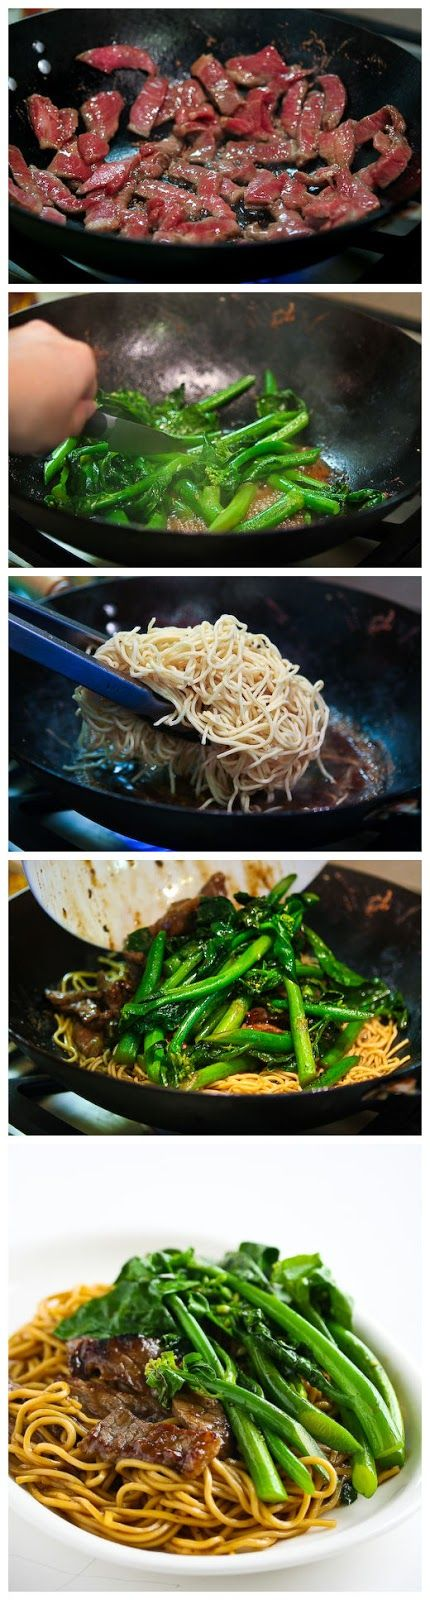 Chinese Broccoli Beef Noodle Stir Fry,